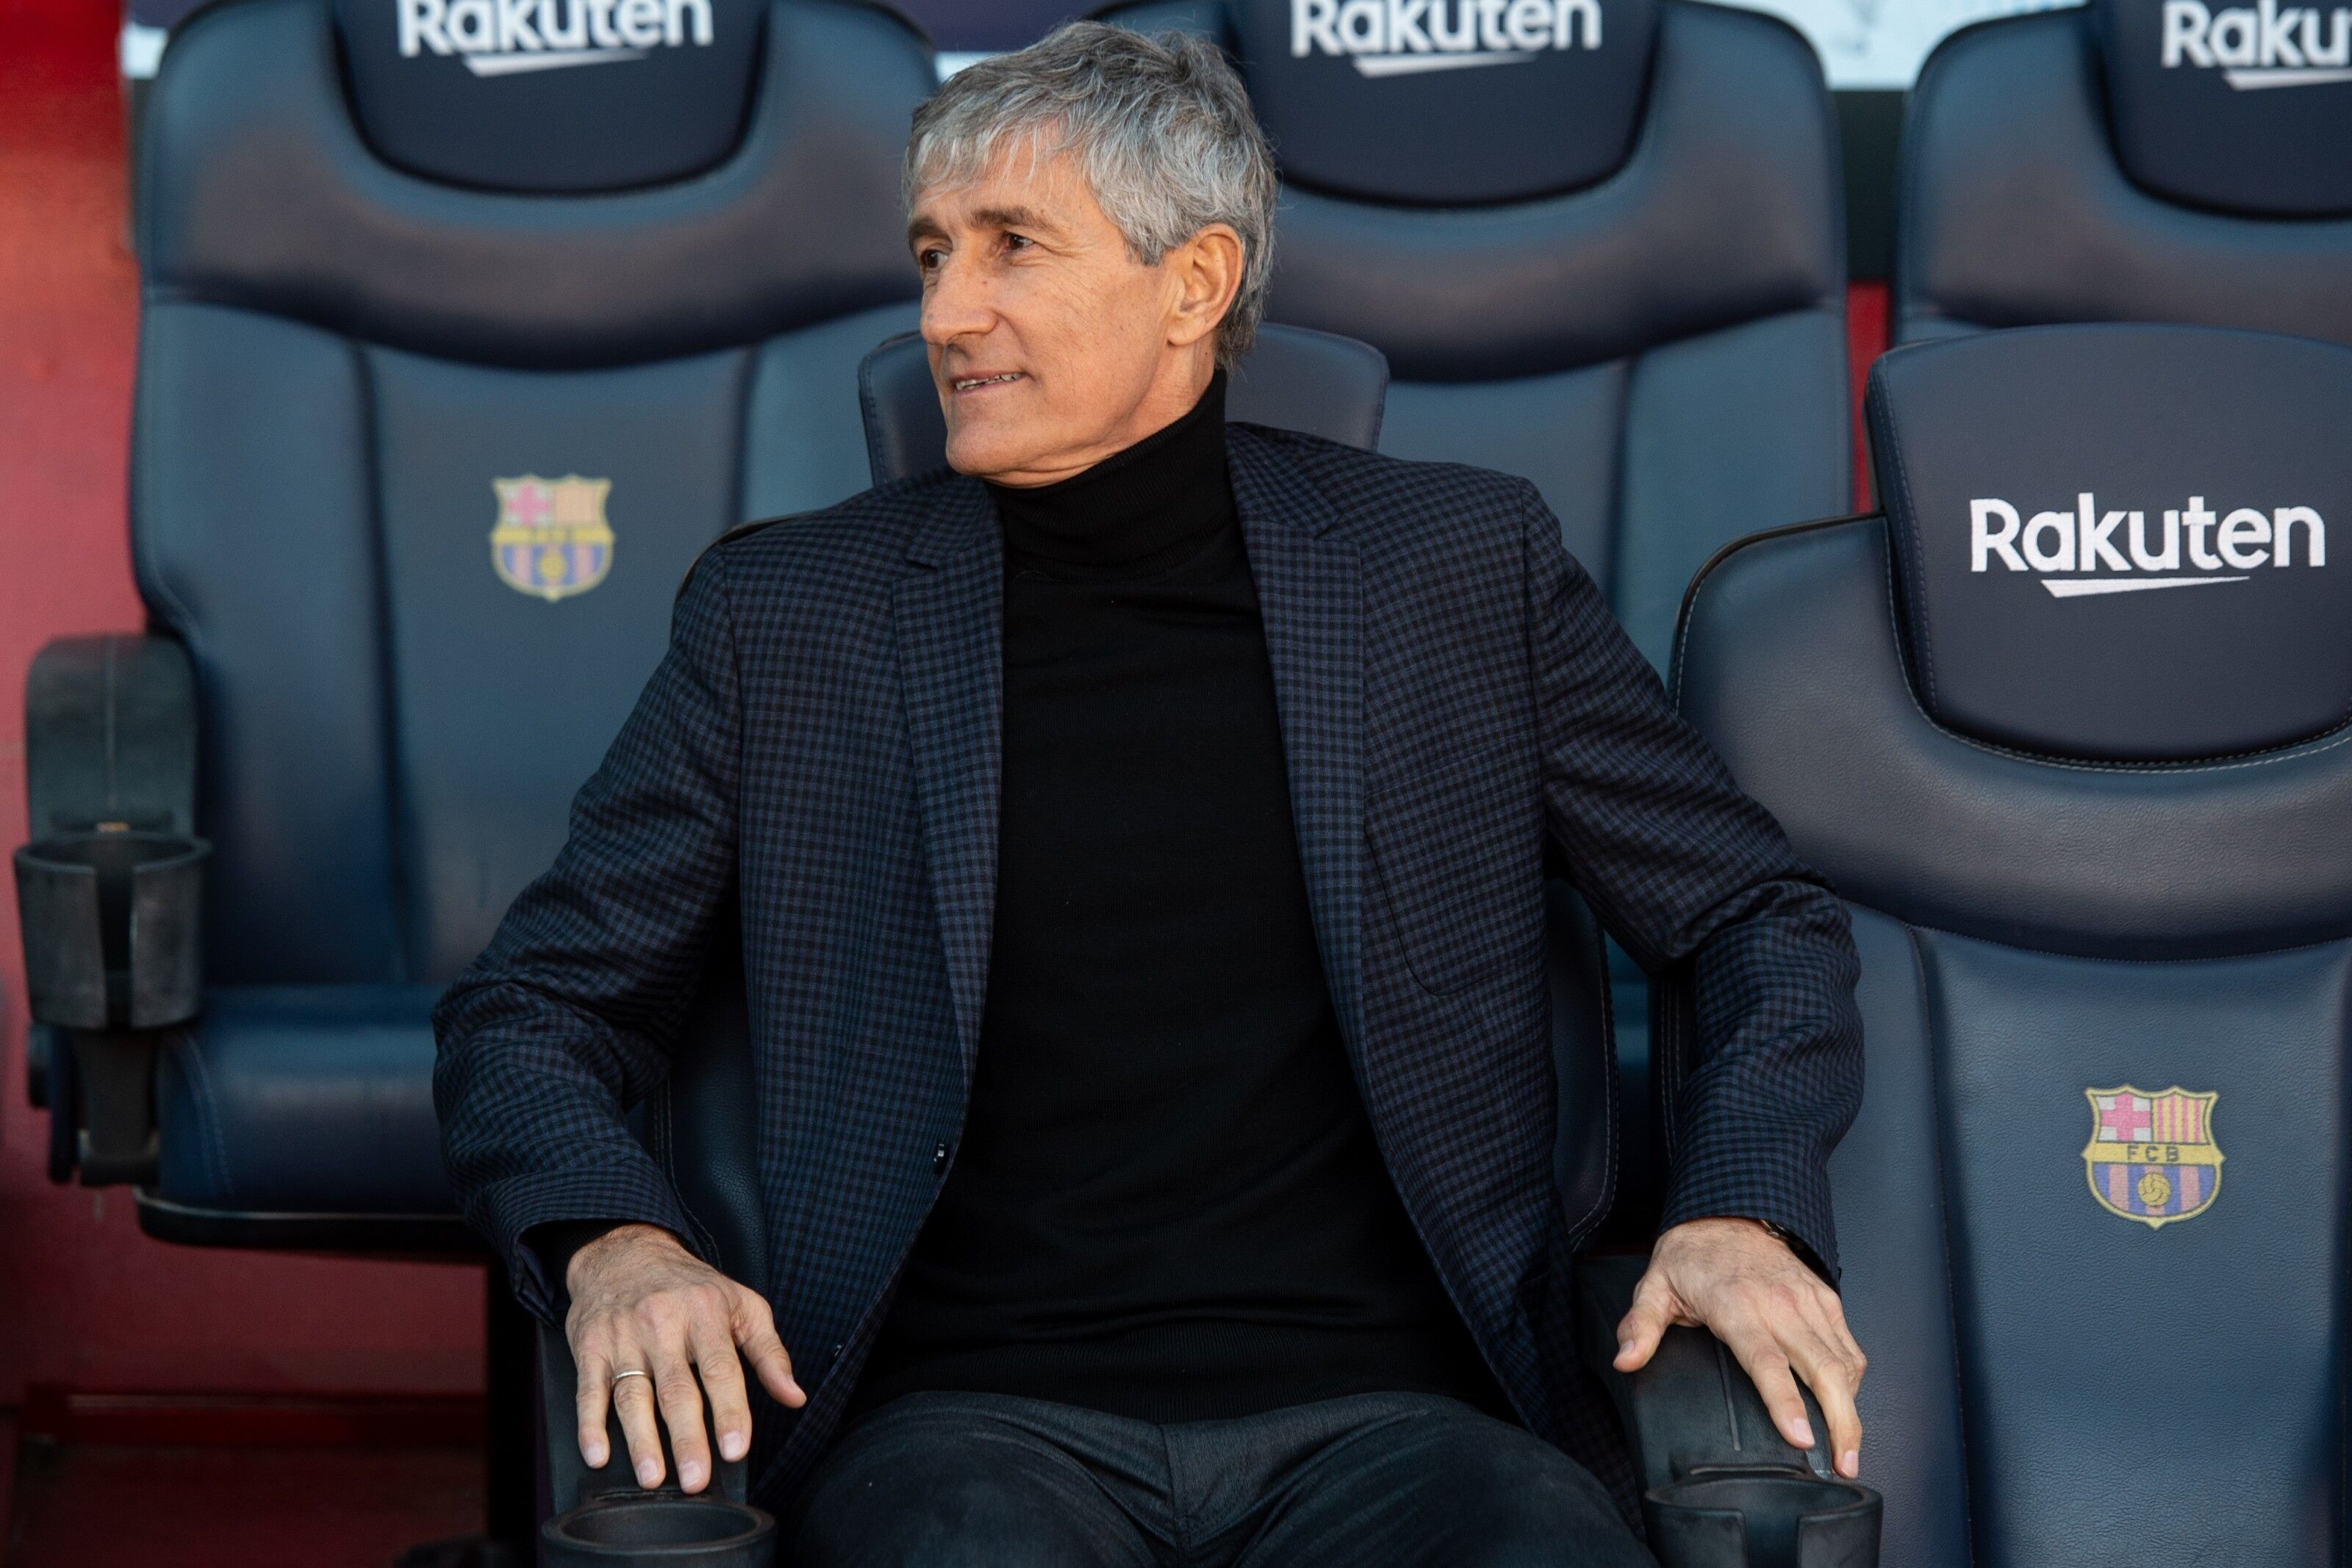 Barcelona boss plans to hand a huge shock to Real Madrid